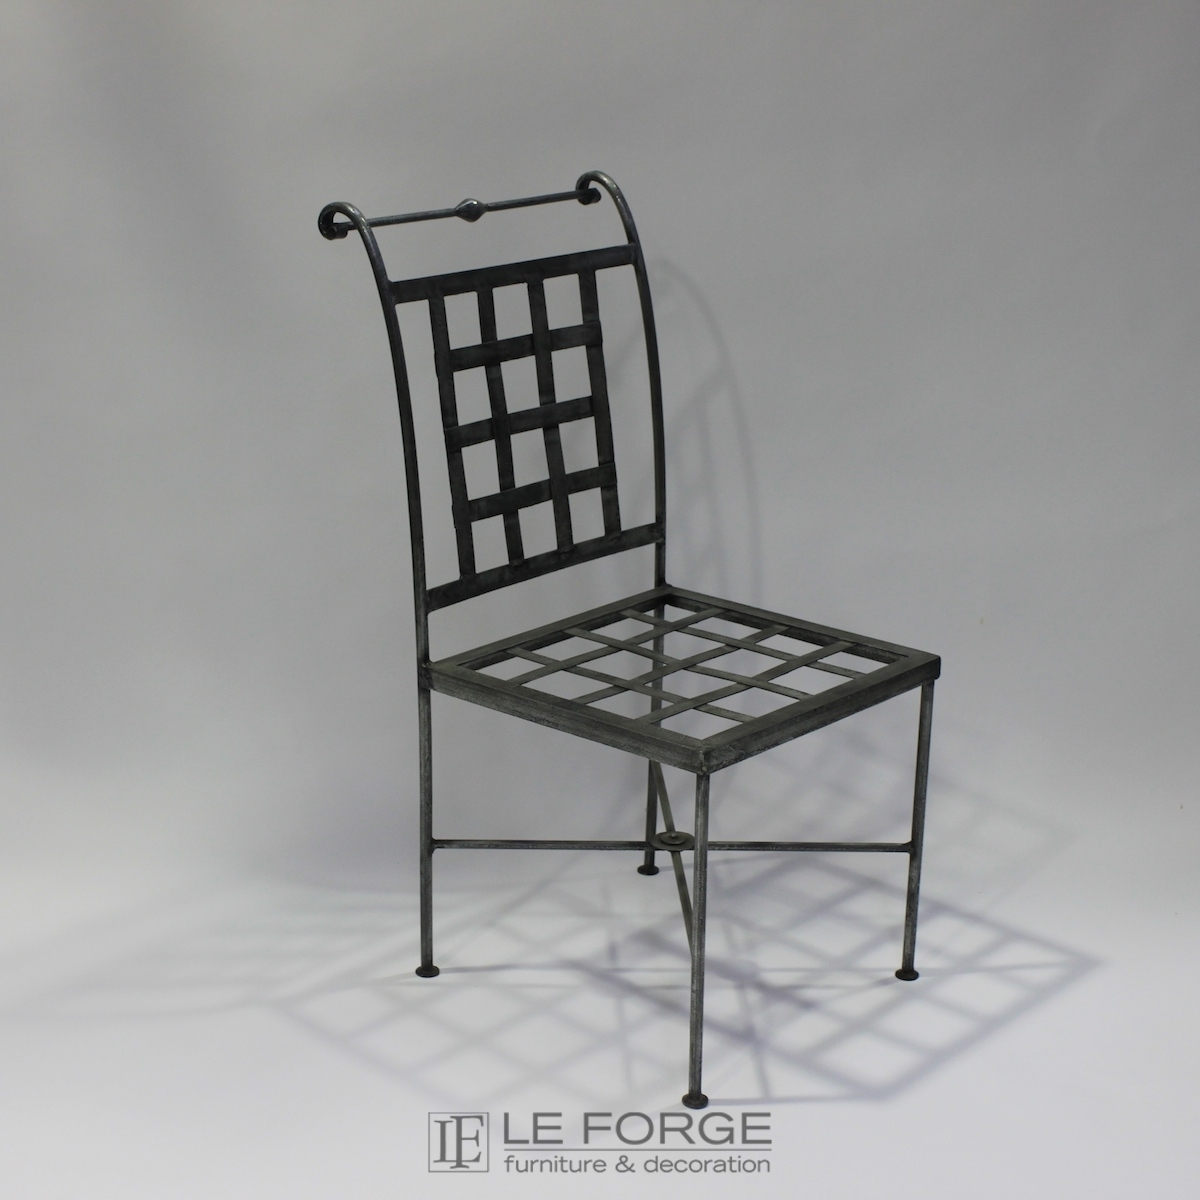 furniture metal. Chair French Steel Le Forge Genoa Furniture Metal N